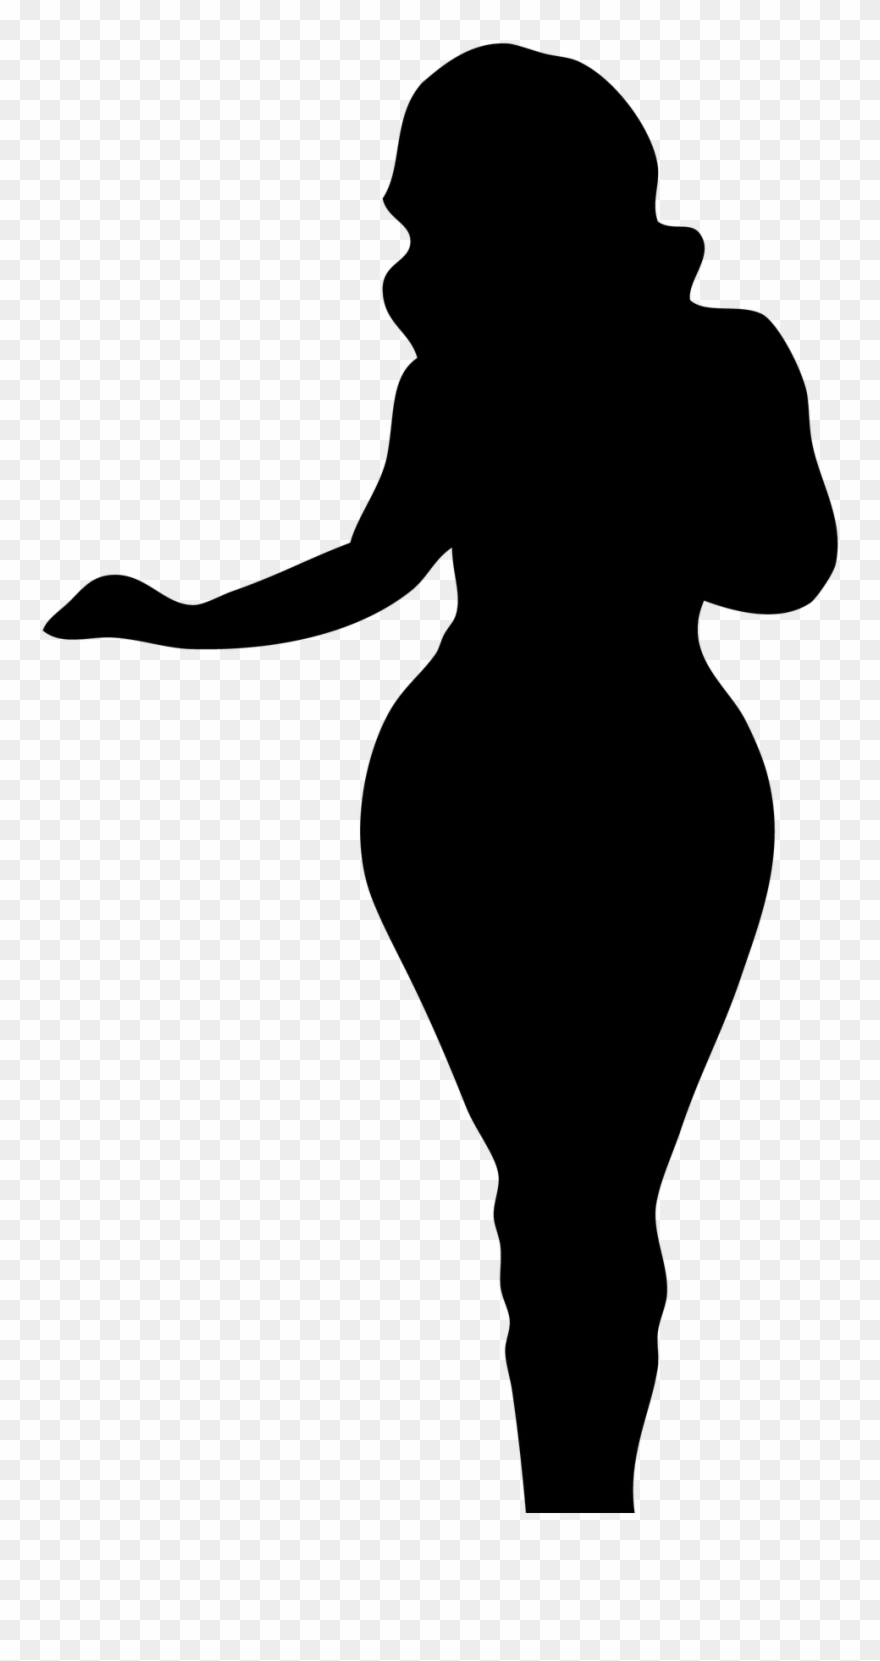 Black Woman Silhouette Clip Art.